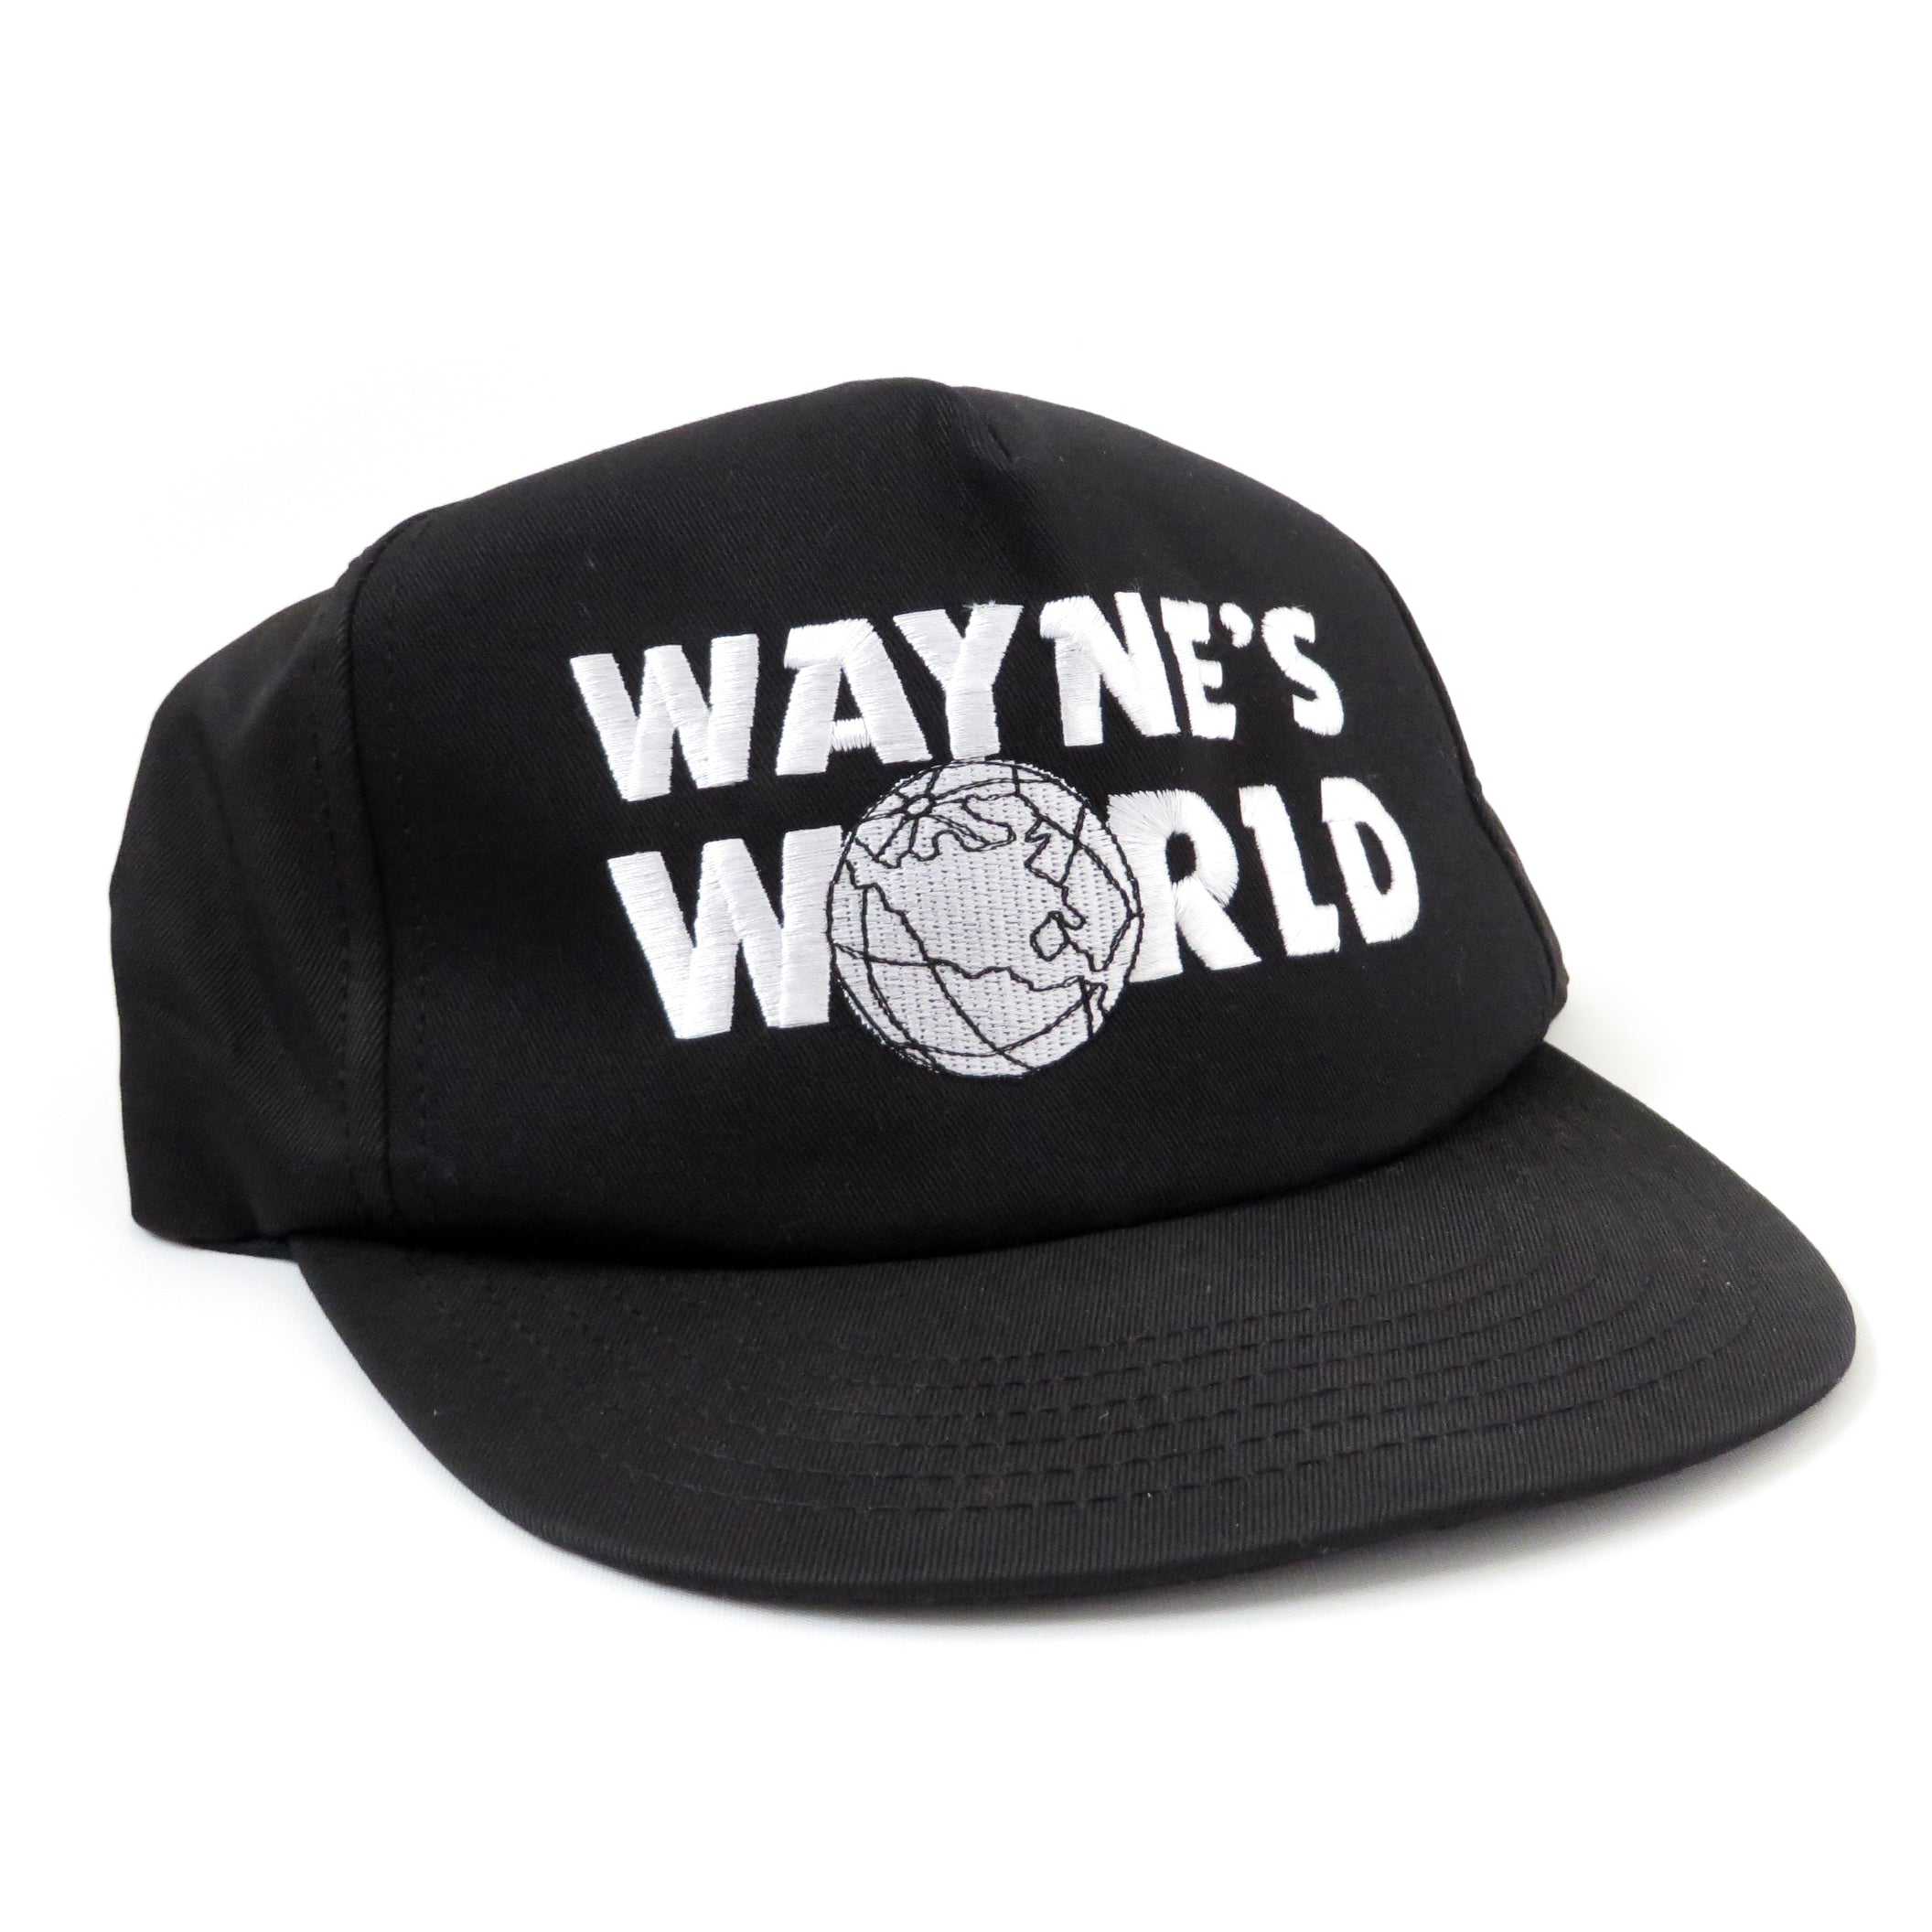 Vintage 1991 Wayne's World Snapback Hat